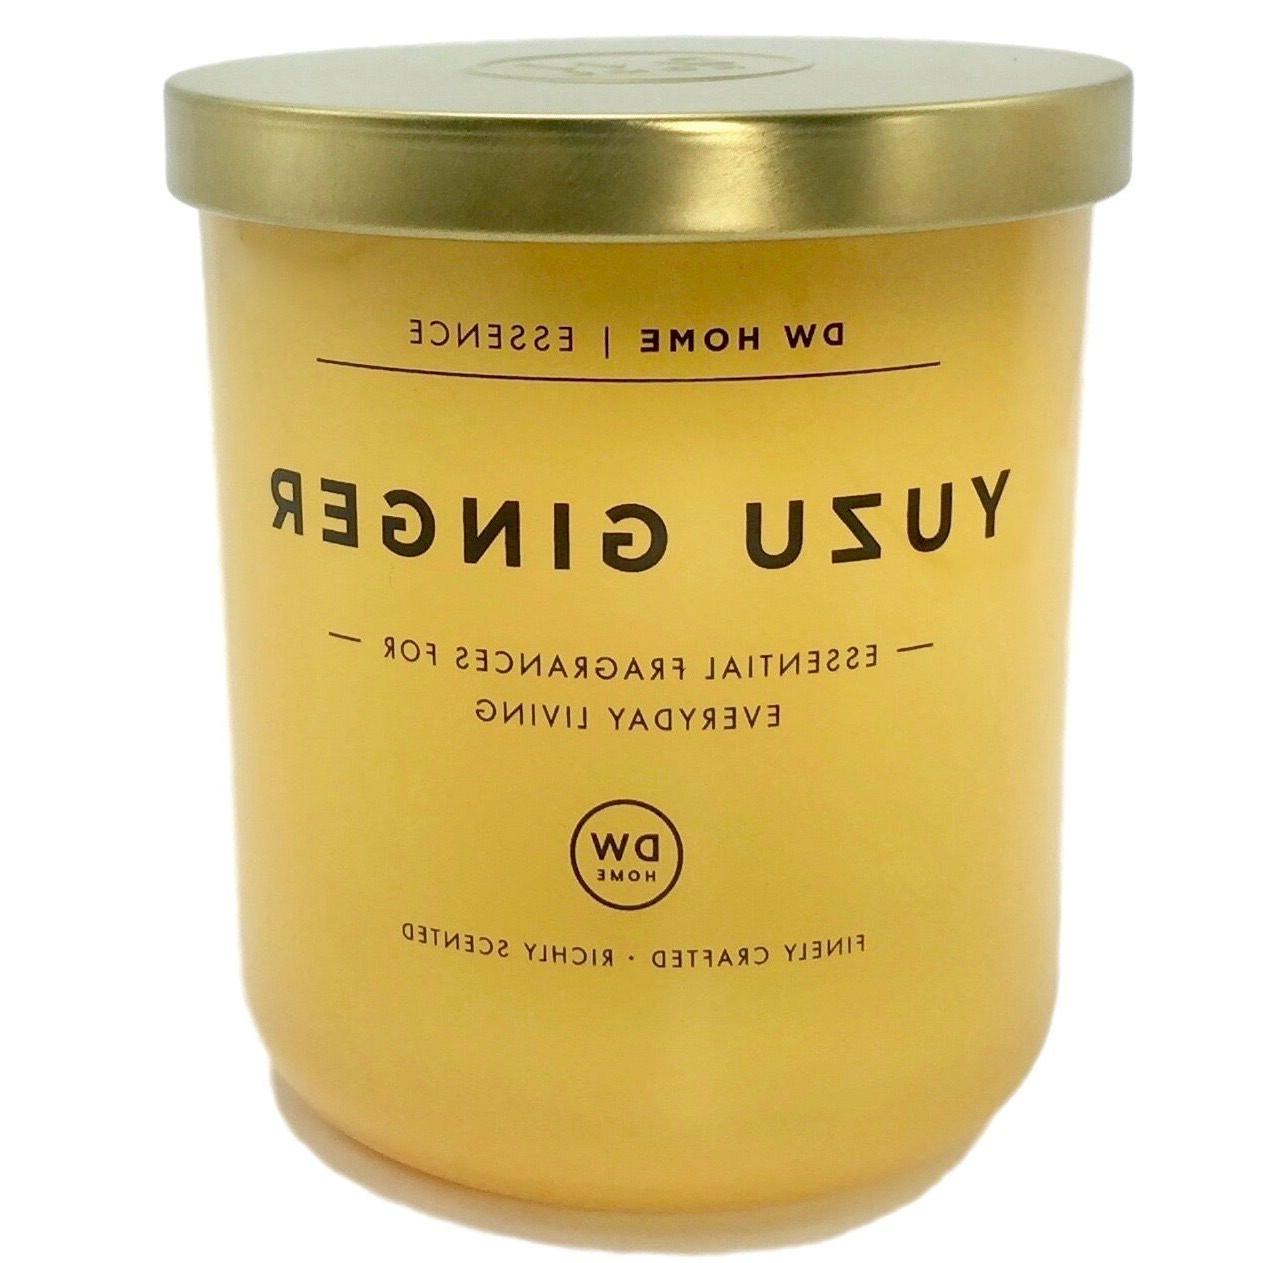 yuzu ginger scented soy wax blend candle